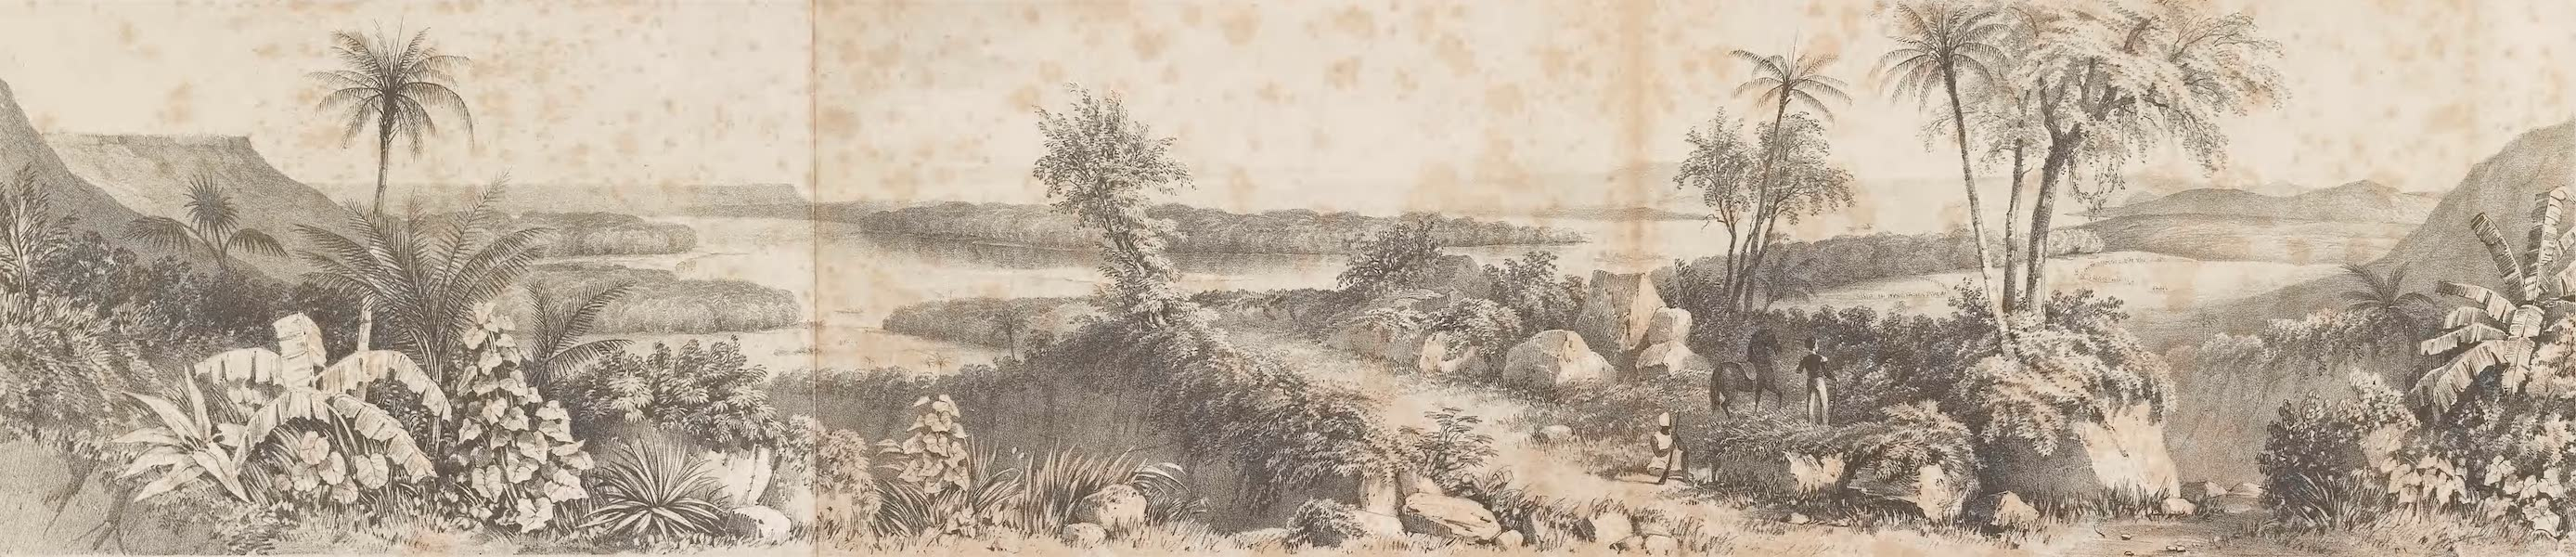 Picturesque Views on the River Niger - The Confluence of the Rivers Niger and Chadda (1840)